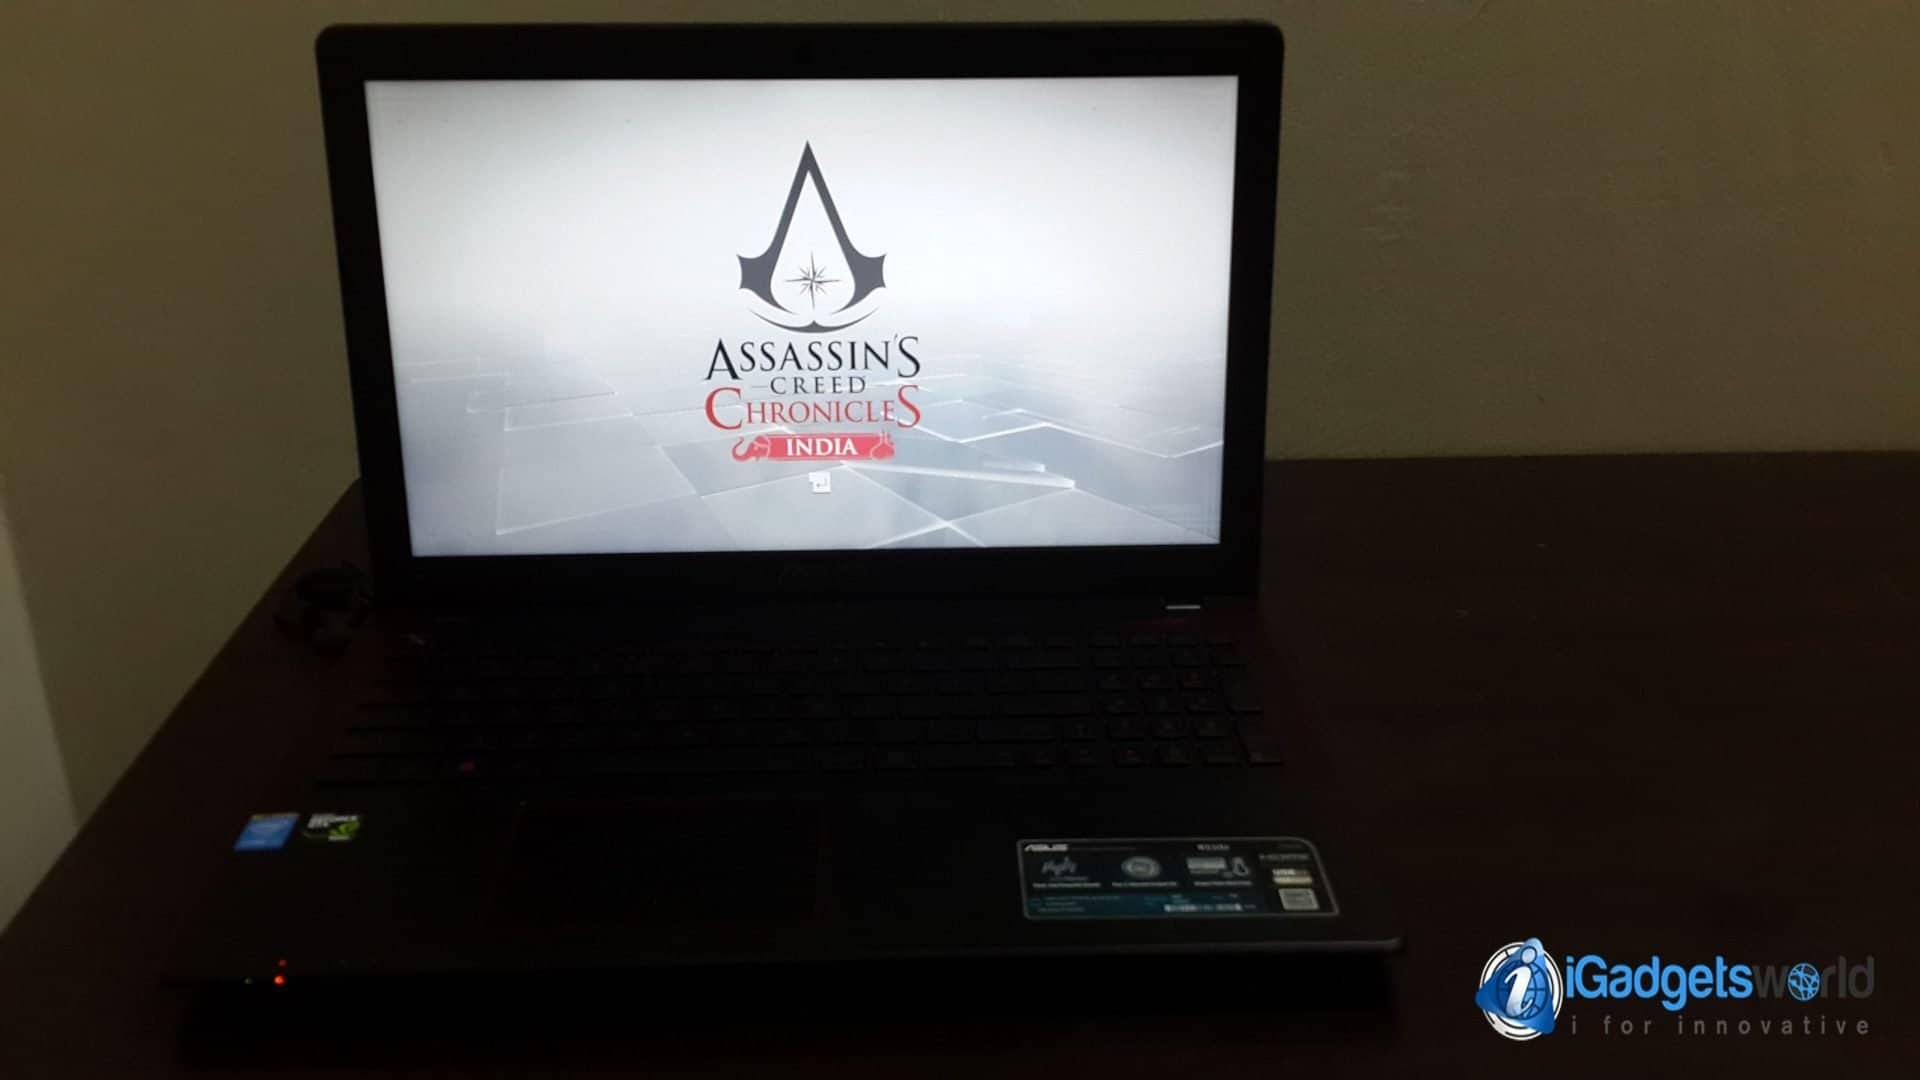 Asus R510J Review: A Slim Gaming Notebook Within the budget! - 10